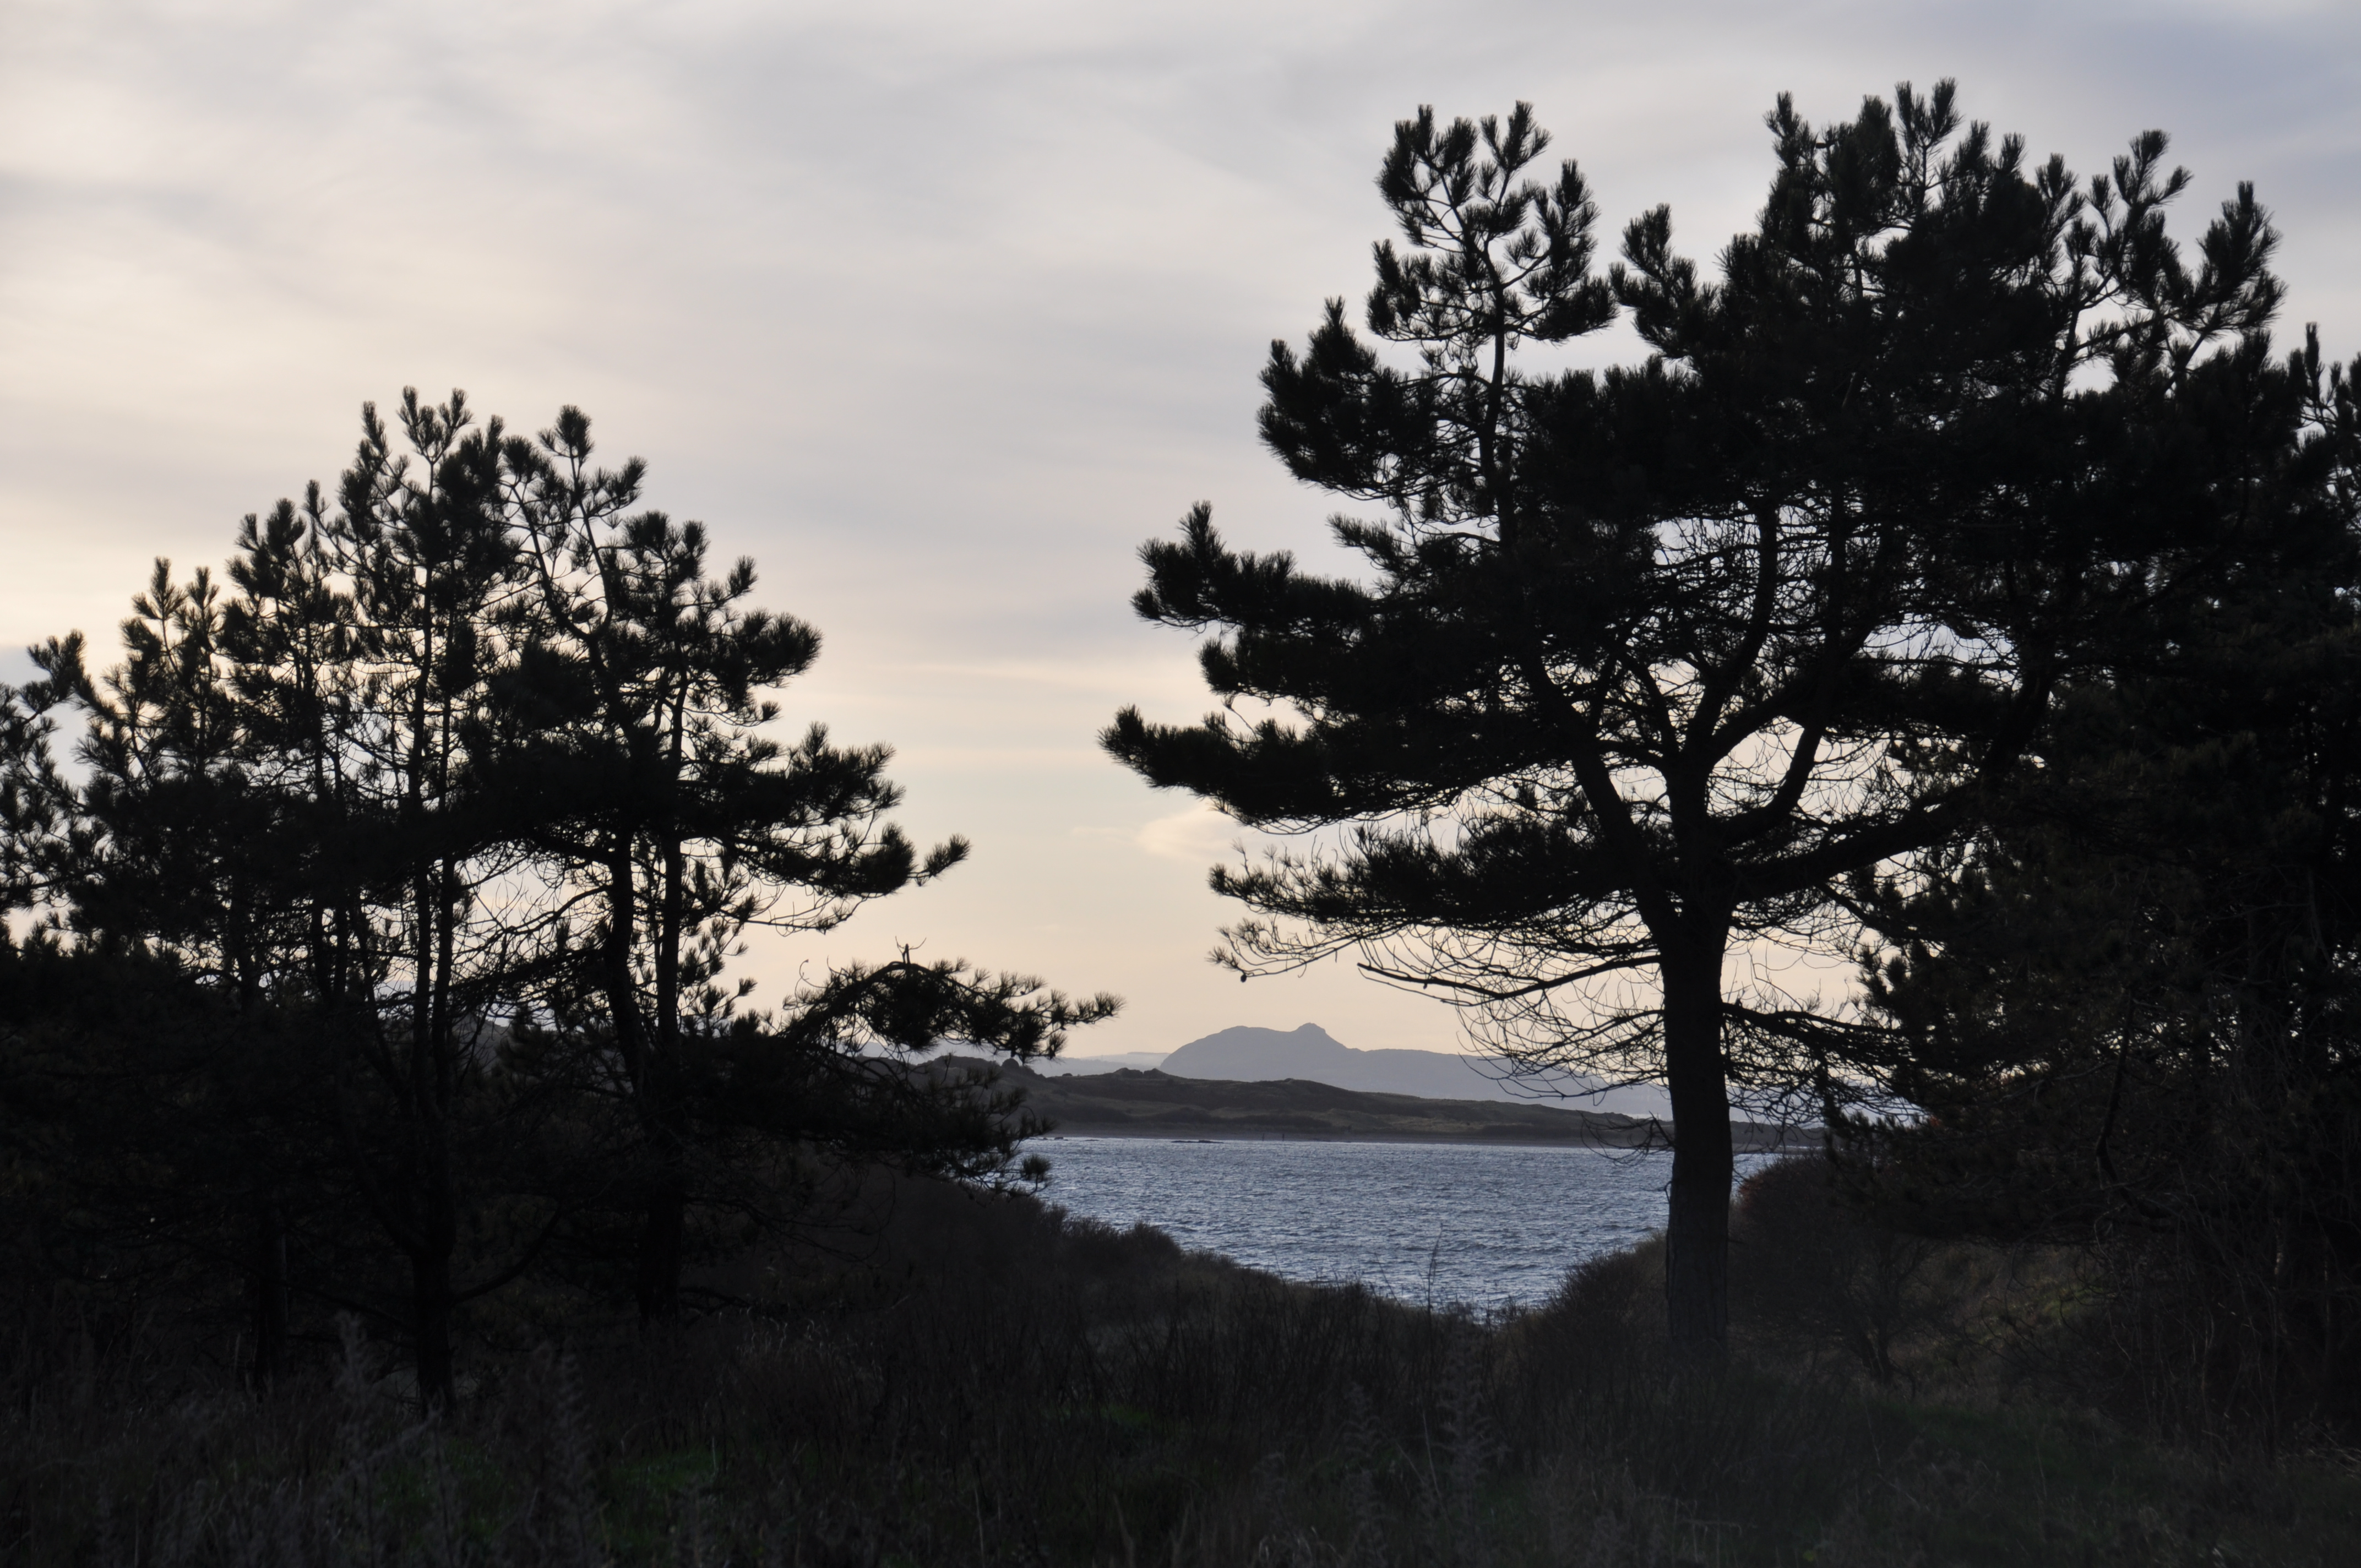 Arthur's Seat seen through a gap in the trees drom the woods above the shore at Gullane beach